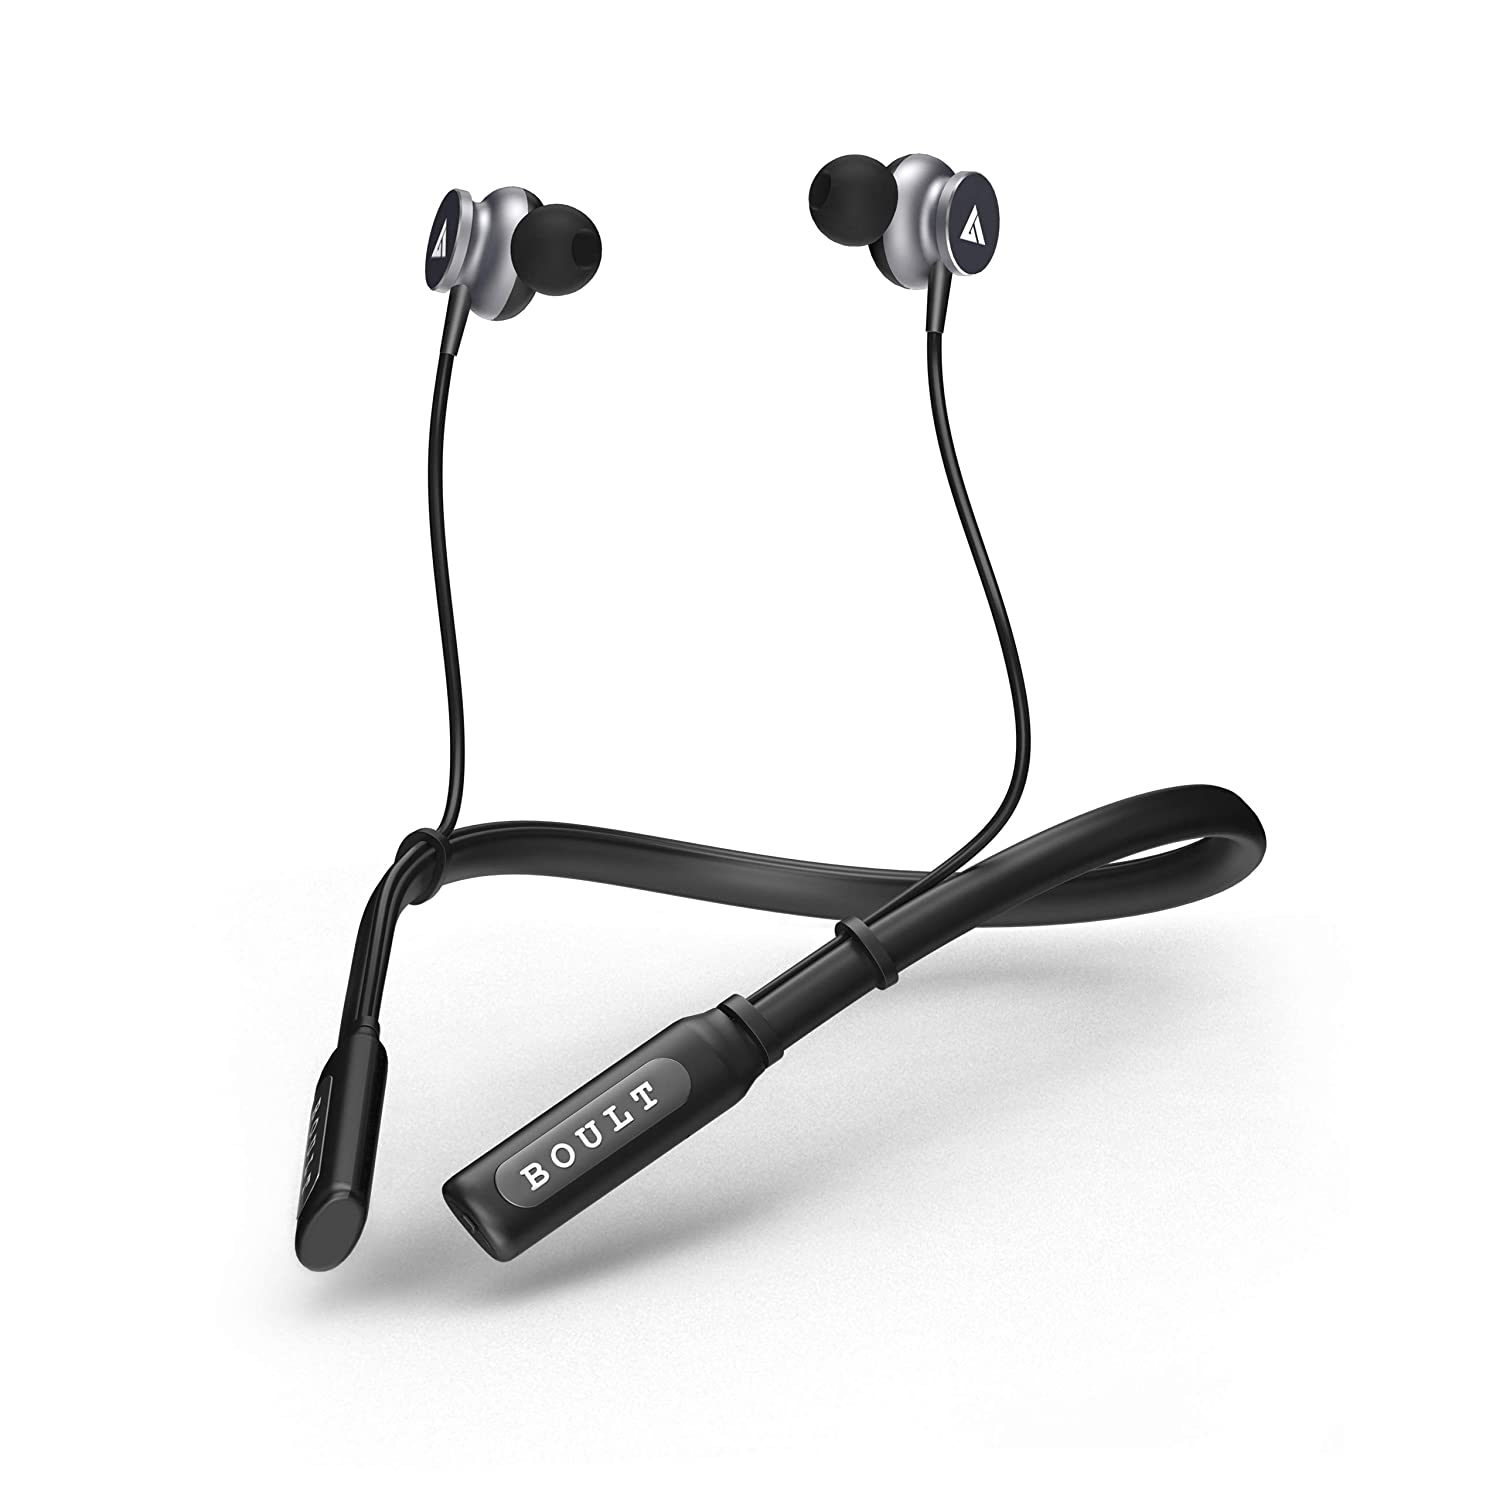 Best Boult Bluetooth Earphone with 12 Hour Battery Life